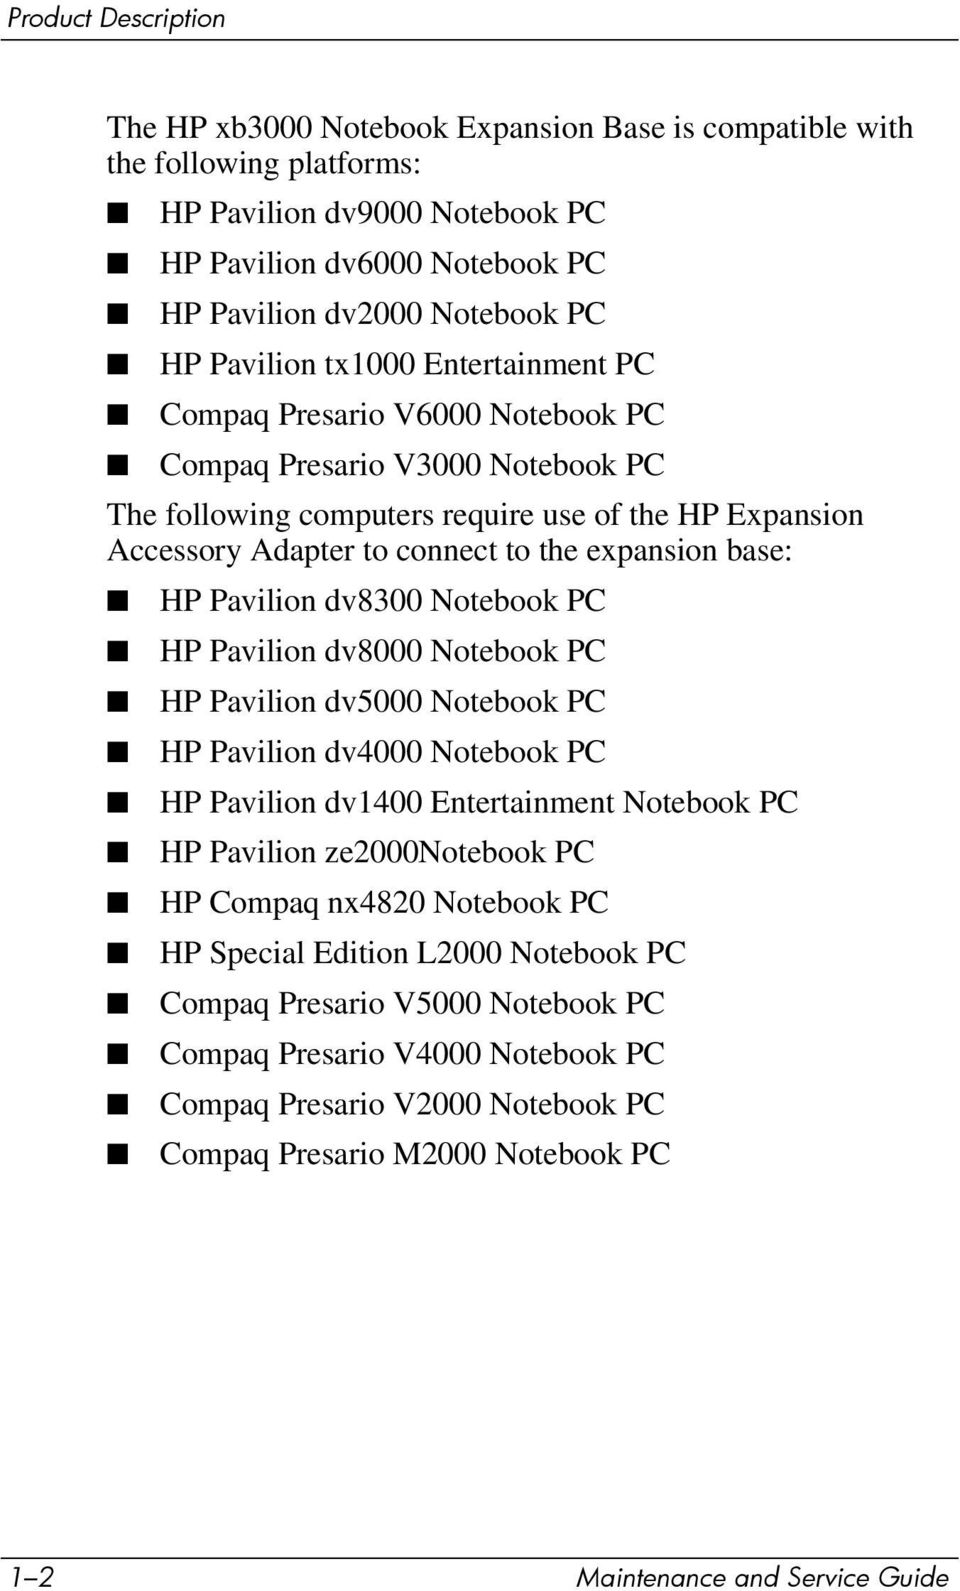 ... Maintenance and Service Guide. expansion base: HP Pavilion dv8300 Notebook  PC HP Pavilion dv8000 Notebook PC HP Pavilion dv5000